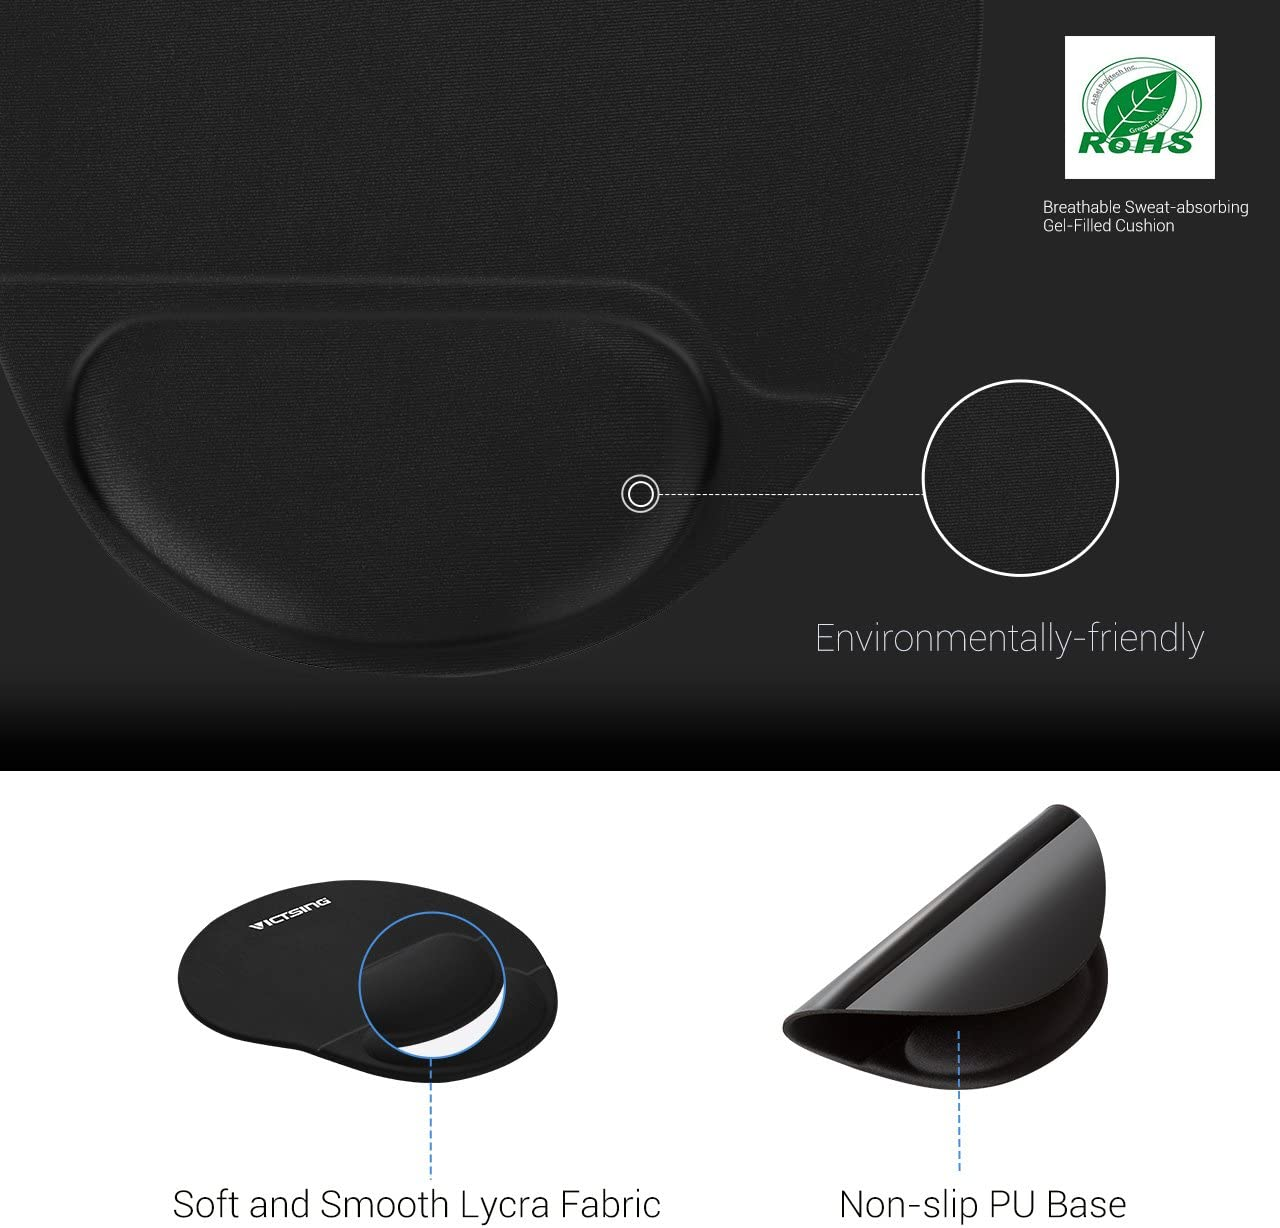 VicTsing Mouse Pad Office /& Travel Gaming Mouse Pad with Lycra Cloth Black Non-Slip PU Base for Computer Laptop Home Ergonomic Mouse Pad with Gel Wrist Rest Support